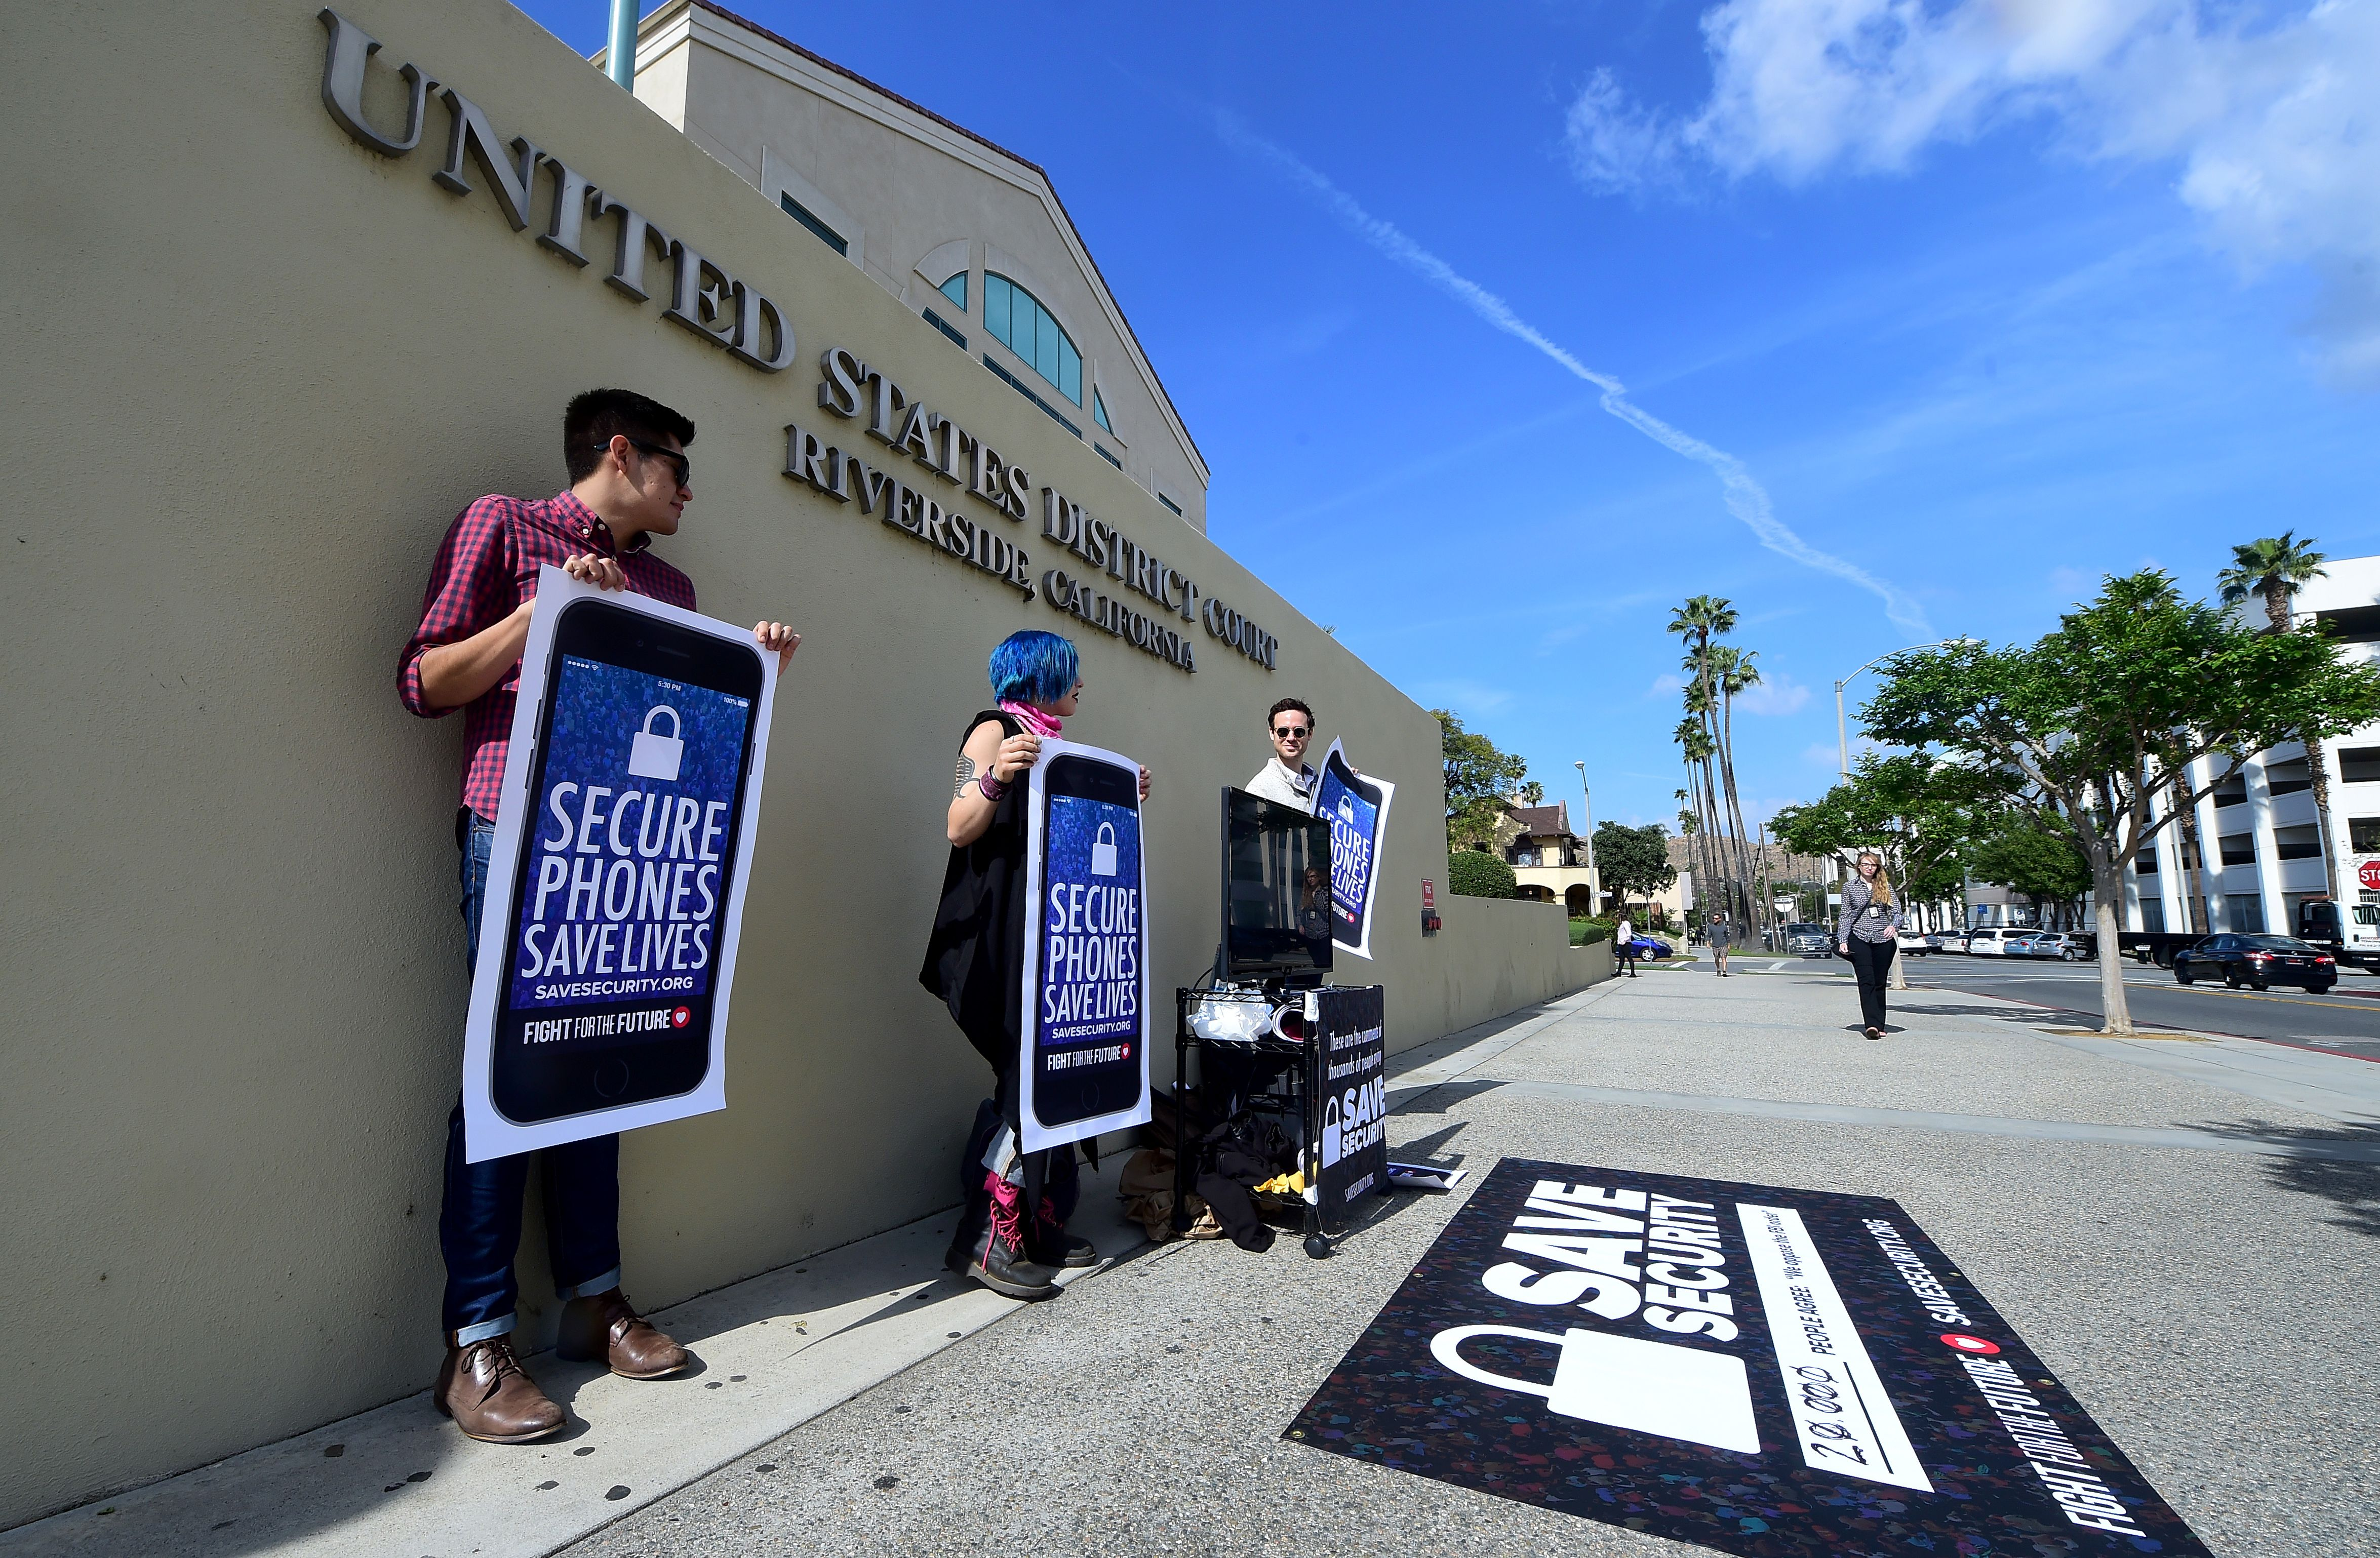 "Activists Luis Nolasco (L), Aki Rose (C) and Josh Rabb (R) hold placards reading ""Secure Phones Saves Lives"" during a protest in front of the US District Court in Riverside, California, on March 22, 2016. The US government's decision to delay its effort to force Apple to help unlock an attacker's iPhone may only postpone the inevitable drawn-out battle over encryption and data protection. / AFP / FREDERIC J. BROWN (Photo credit should read FREDERIC J. BROWN/AFP/Getty Images)"